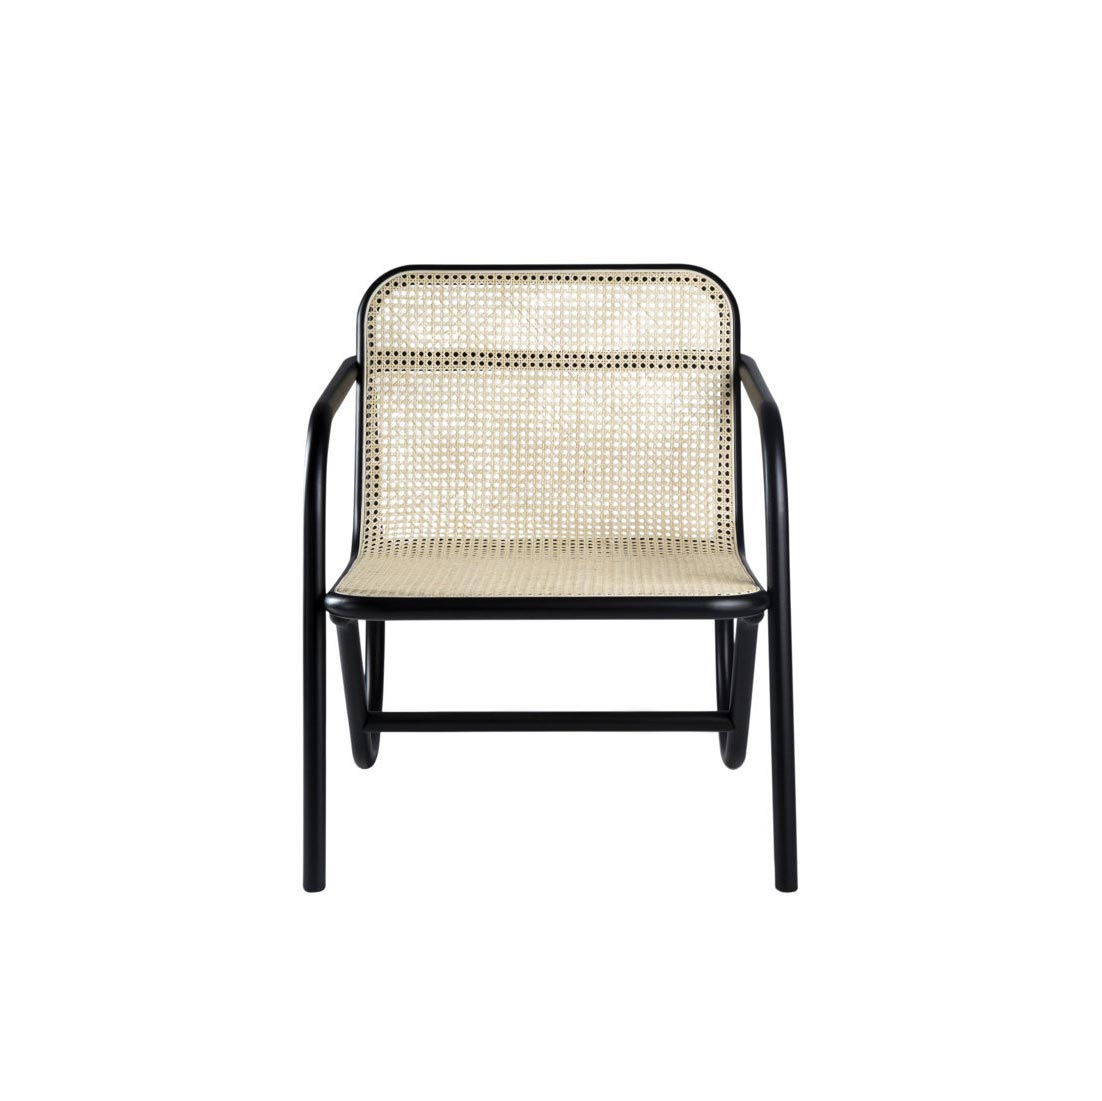 N. 200 Upholstered Black Armchair - N.200 celebrates the 200th anniversary of the company's first joinery, launched by Michael Thonet. With a deeply harmonious approach, the designer has brought his poetic yet disciplined hand to signature Gebrüder Thonet Vienna design features: bent beechwood and woven cane, the distinguishing features of N.200, where method and form create a timeless chair with a deliberately clean, minimalist elegance.  | Matter of Stuff